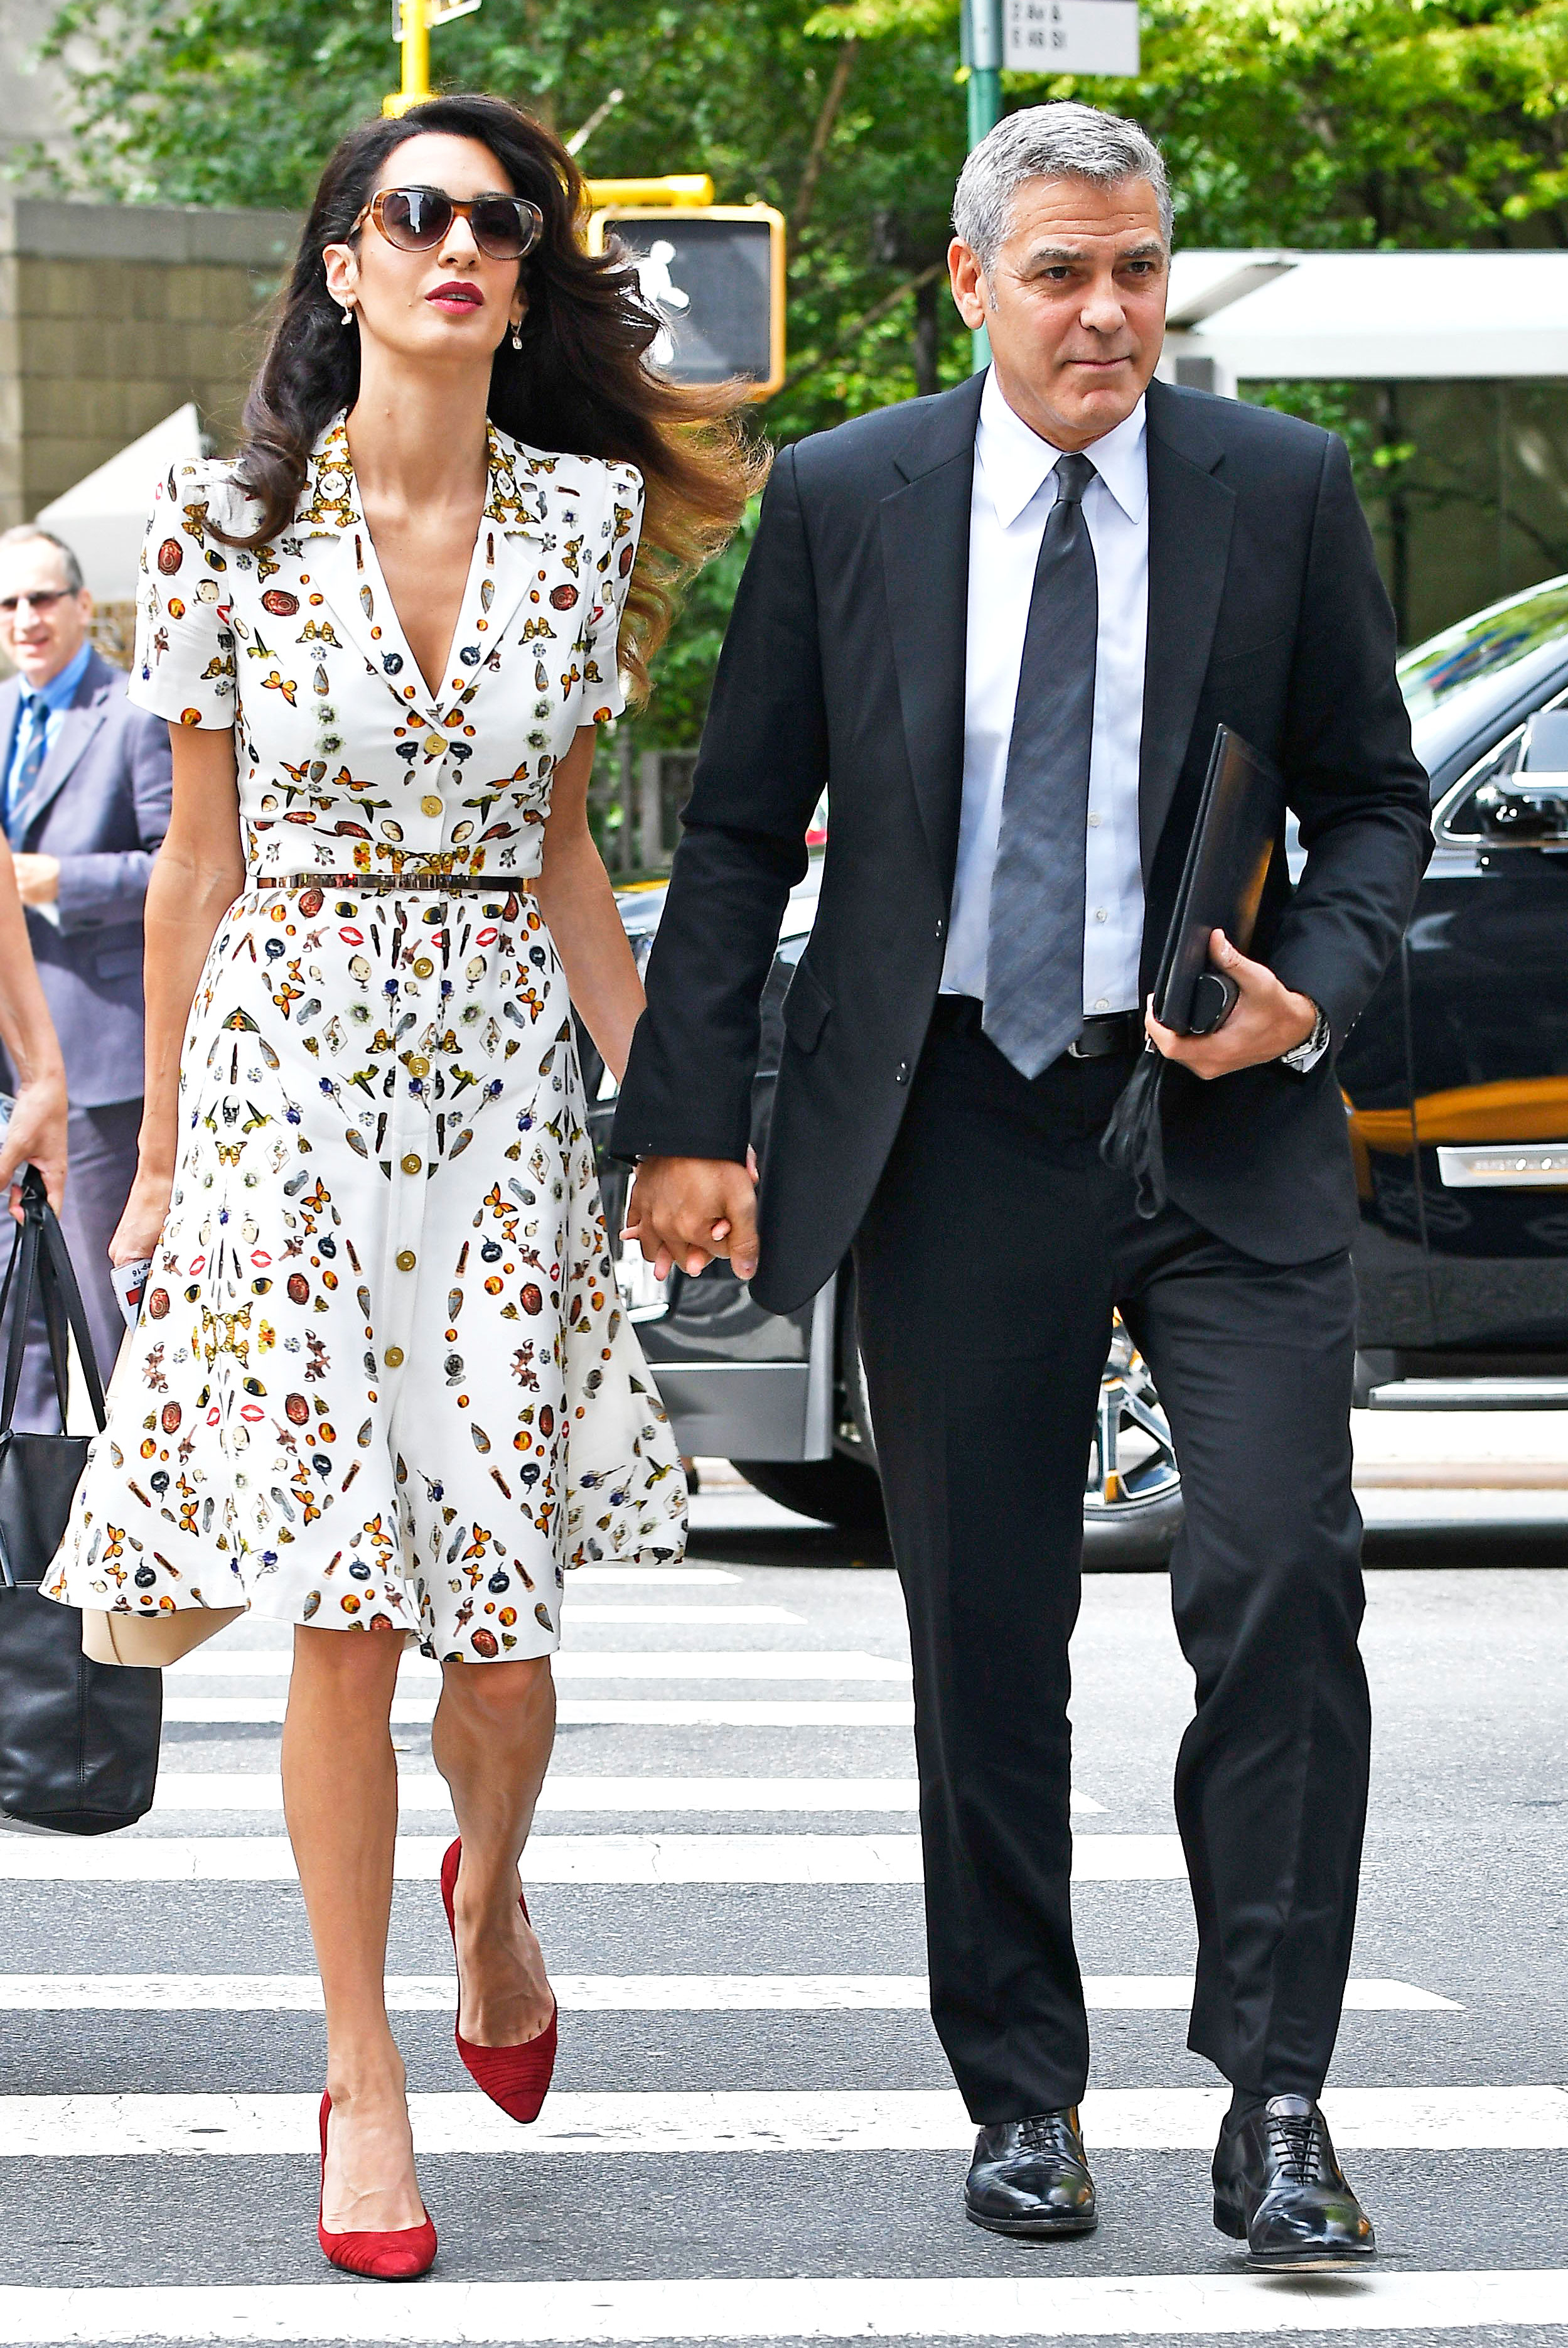 Amal Clooney Wears Whimsical Button Down Dress Street Style Photo